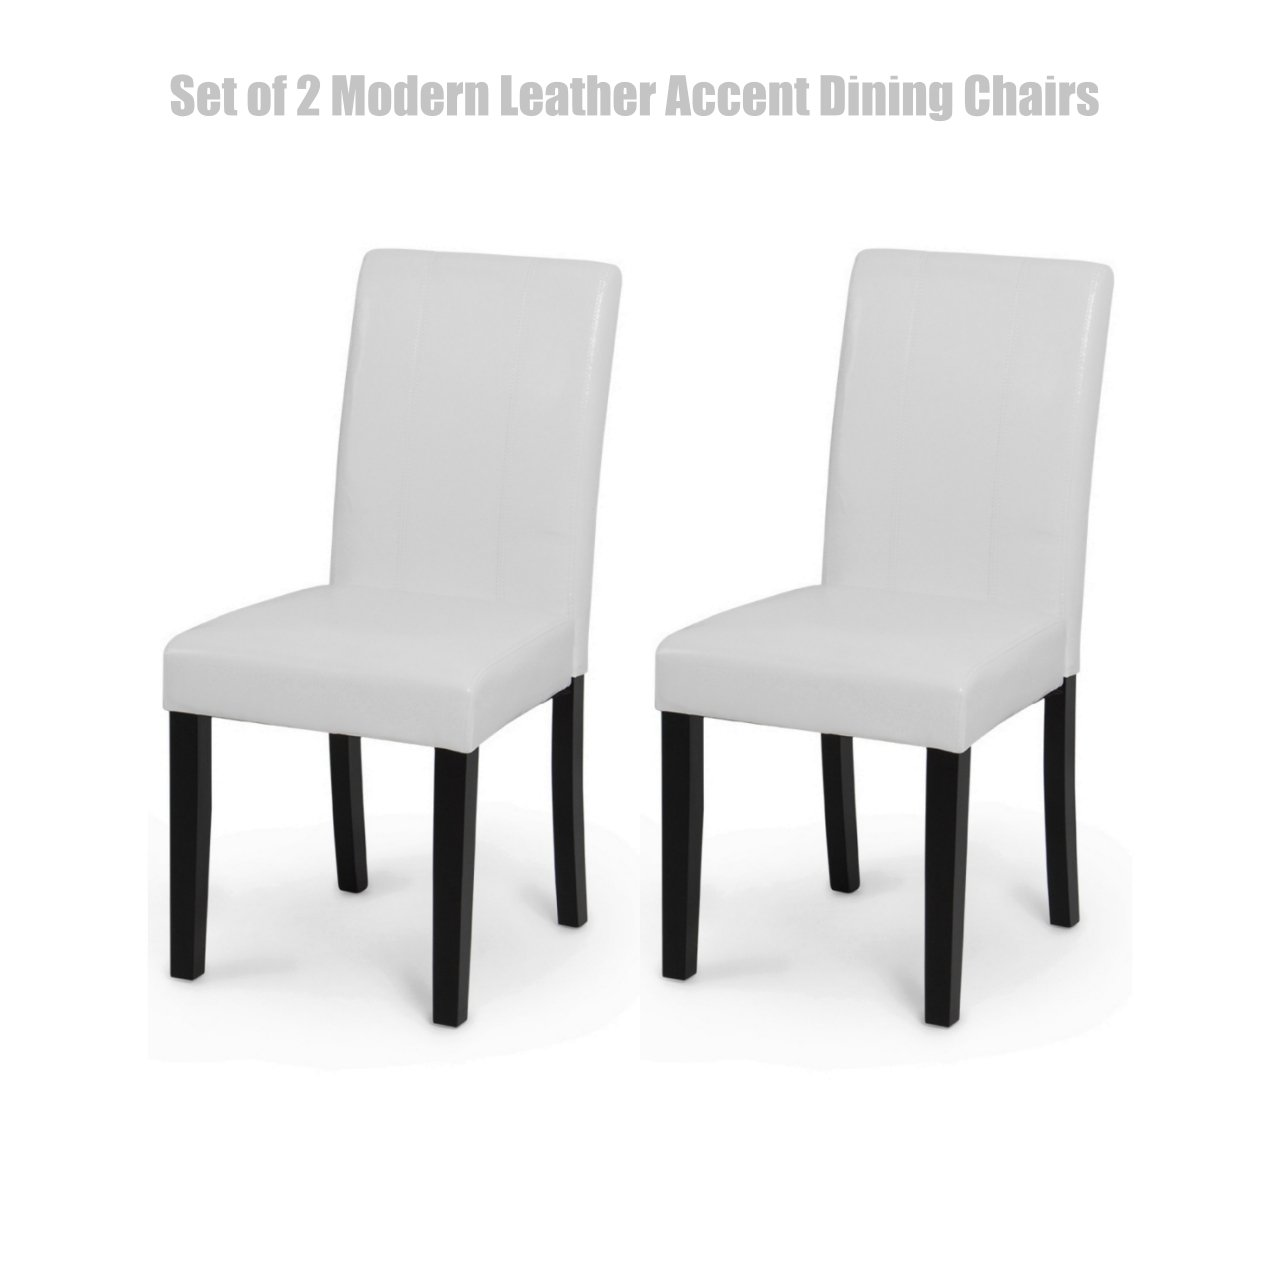 Modern Design High Backrest Dining Chairs Sturdy Hardwood Legs Unique PU Leather High Density Foam Seat Home Office Furniture Set of 2 White #1452wh